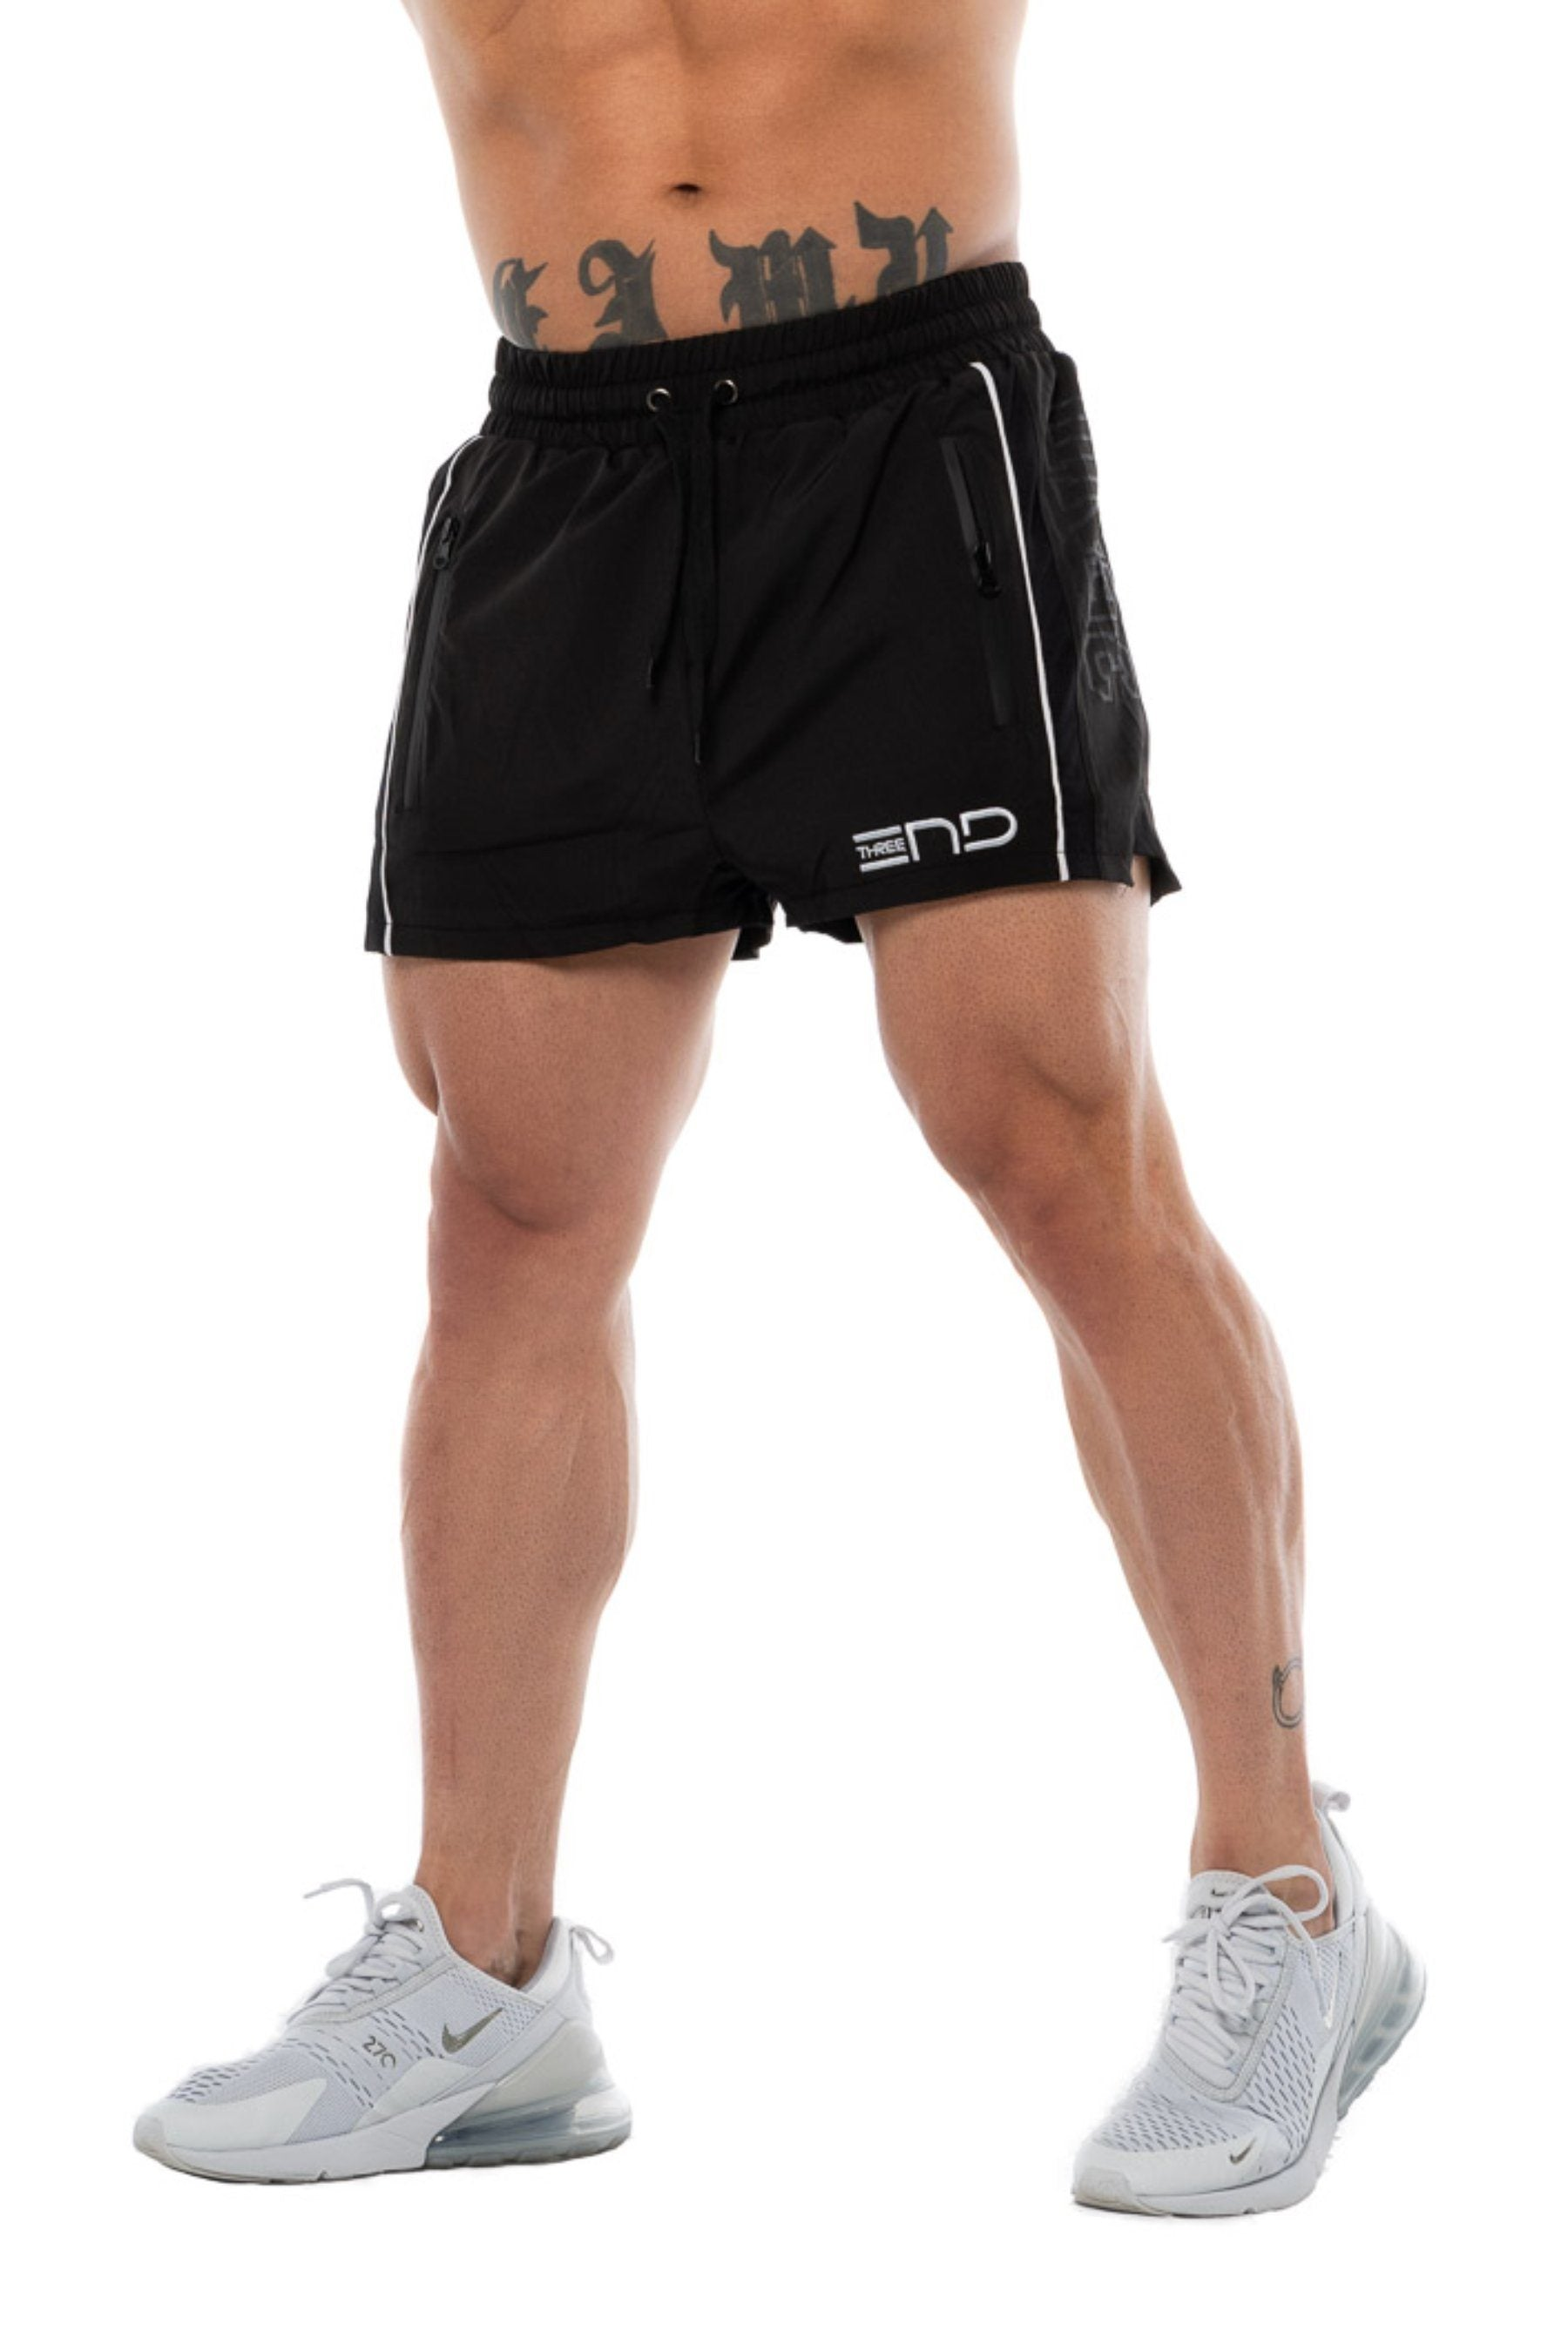 Three End Lifting Shorts - Black